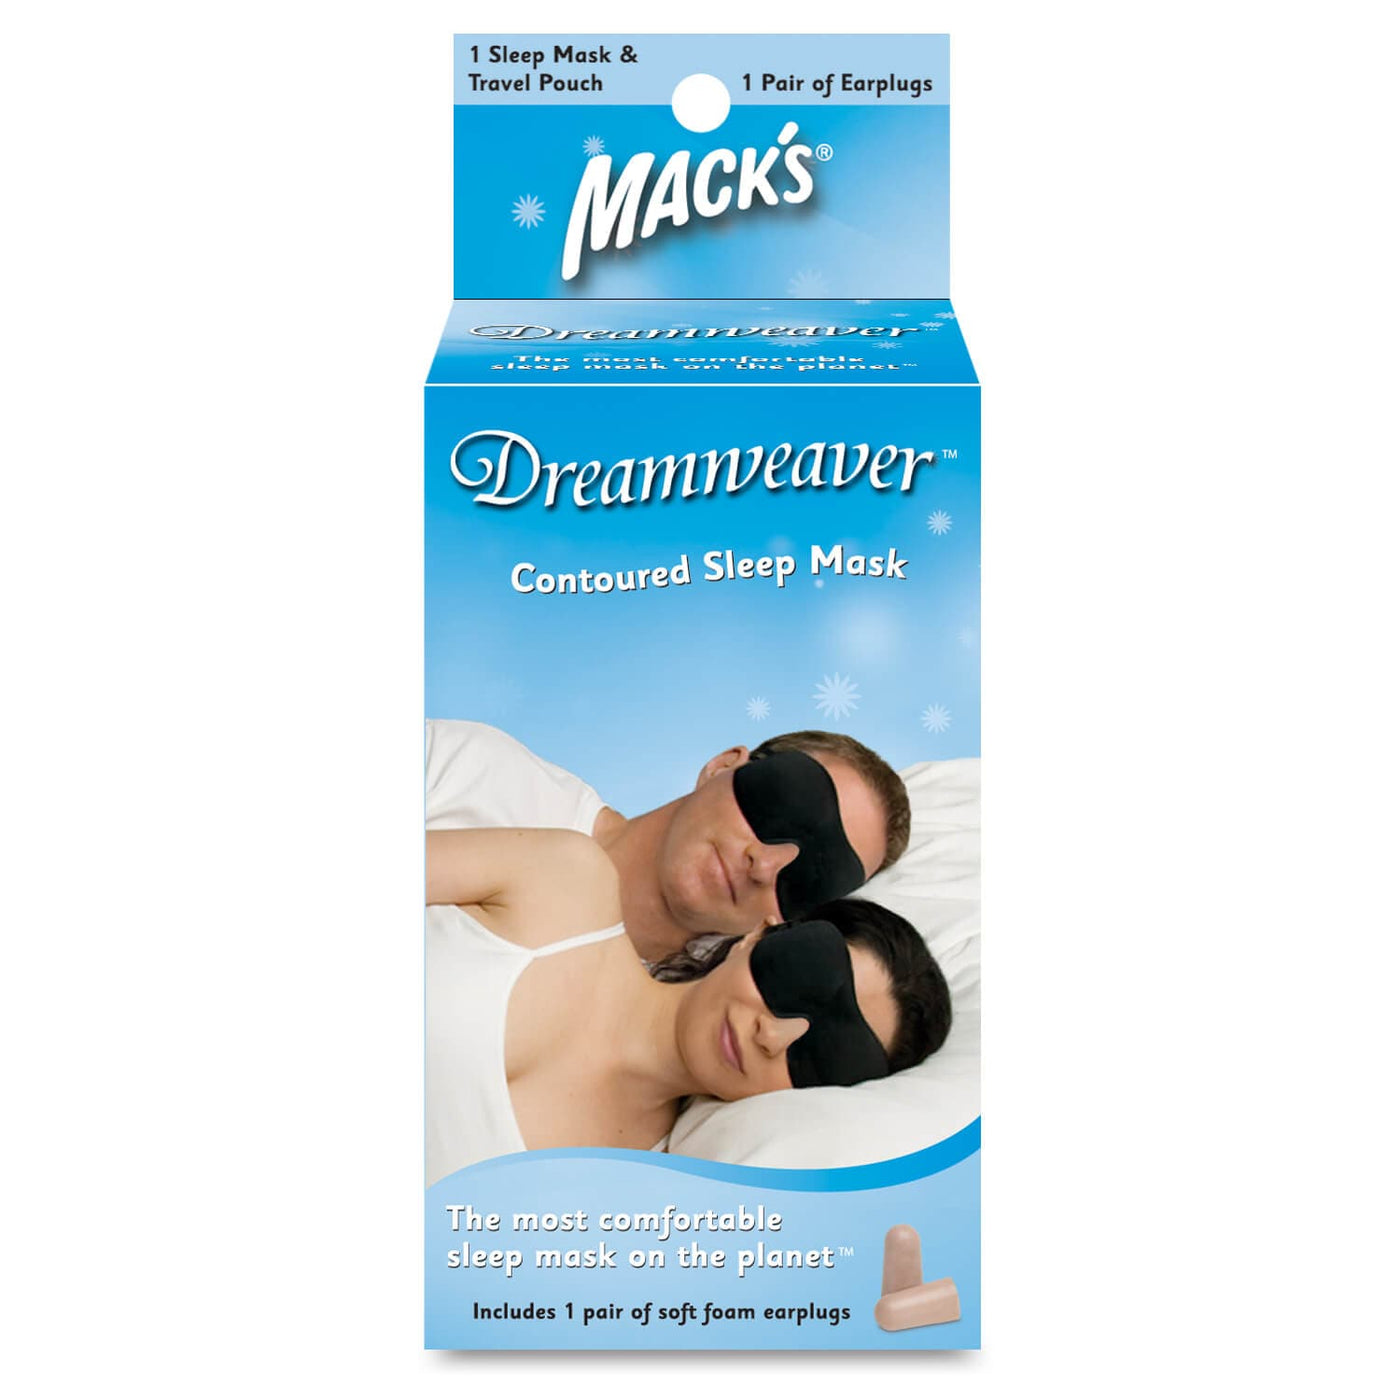 Macks Dreamweaver Contoured Sleep Mask w/ Ear Plugs